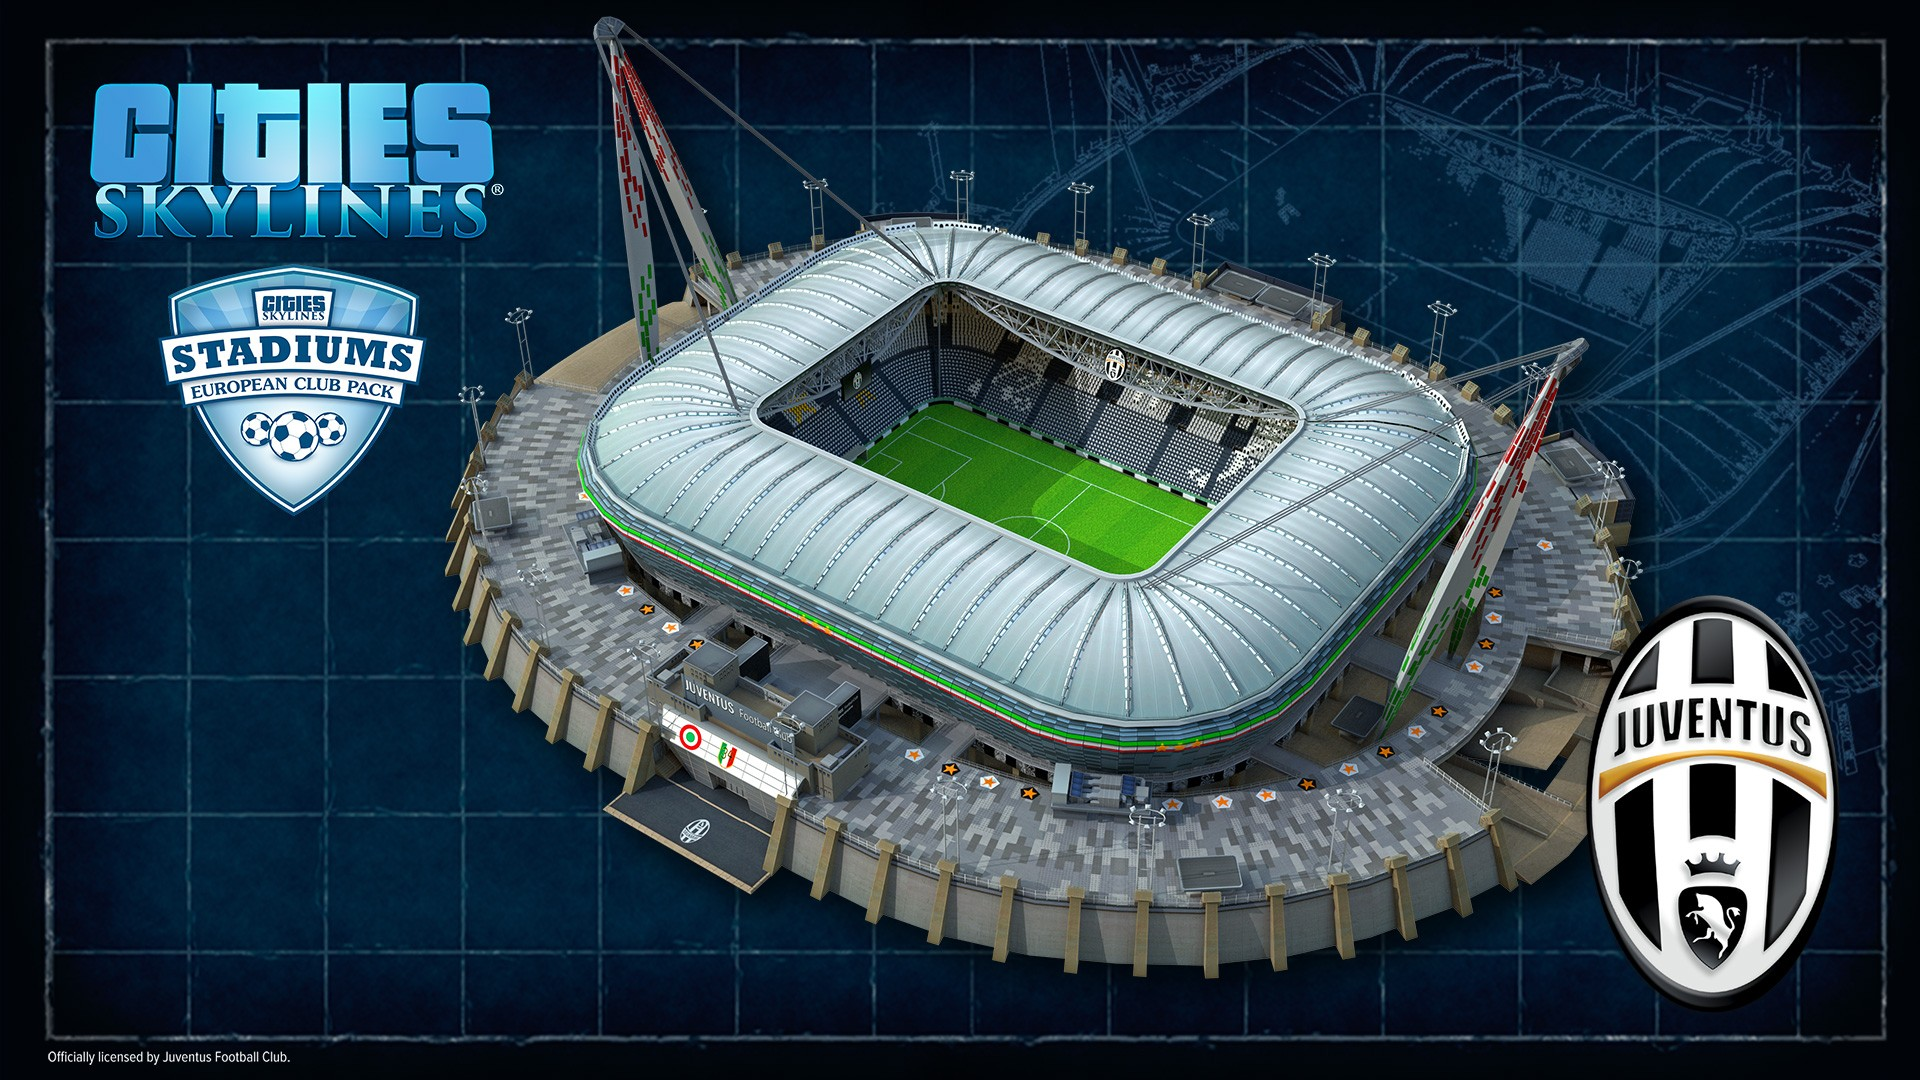 Cities: Skylines Goes Clubbing with Real-World Football Clubs and Stadiums